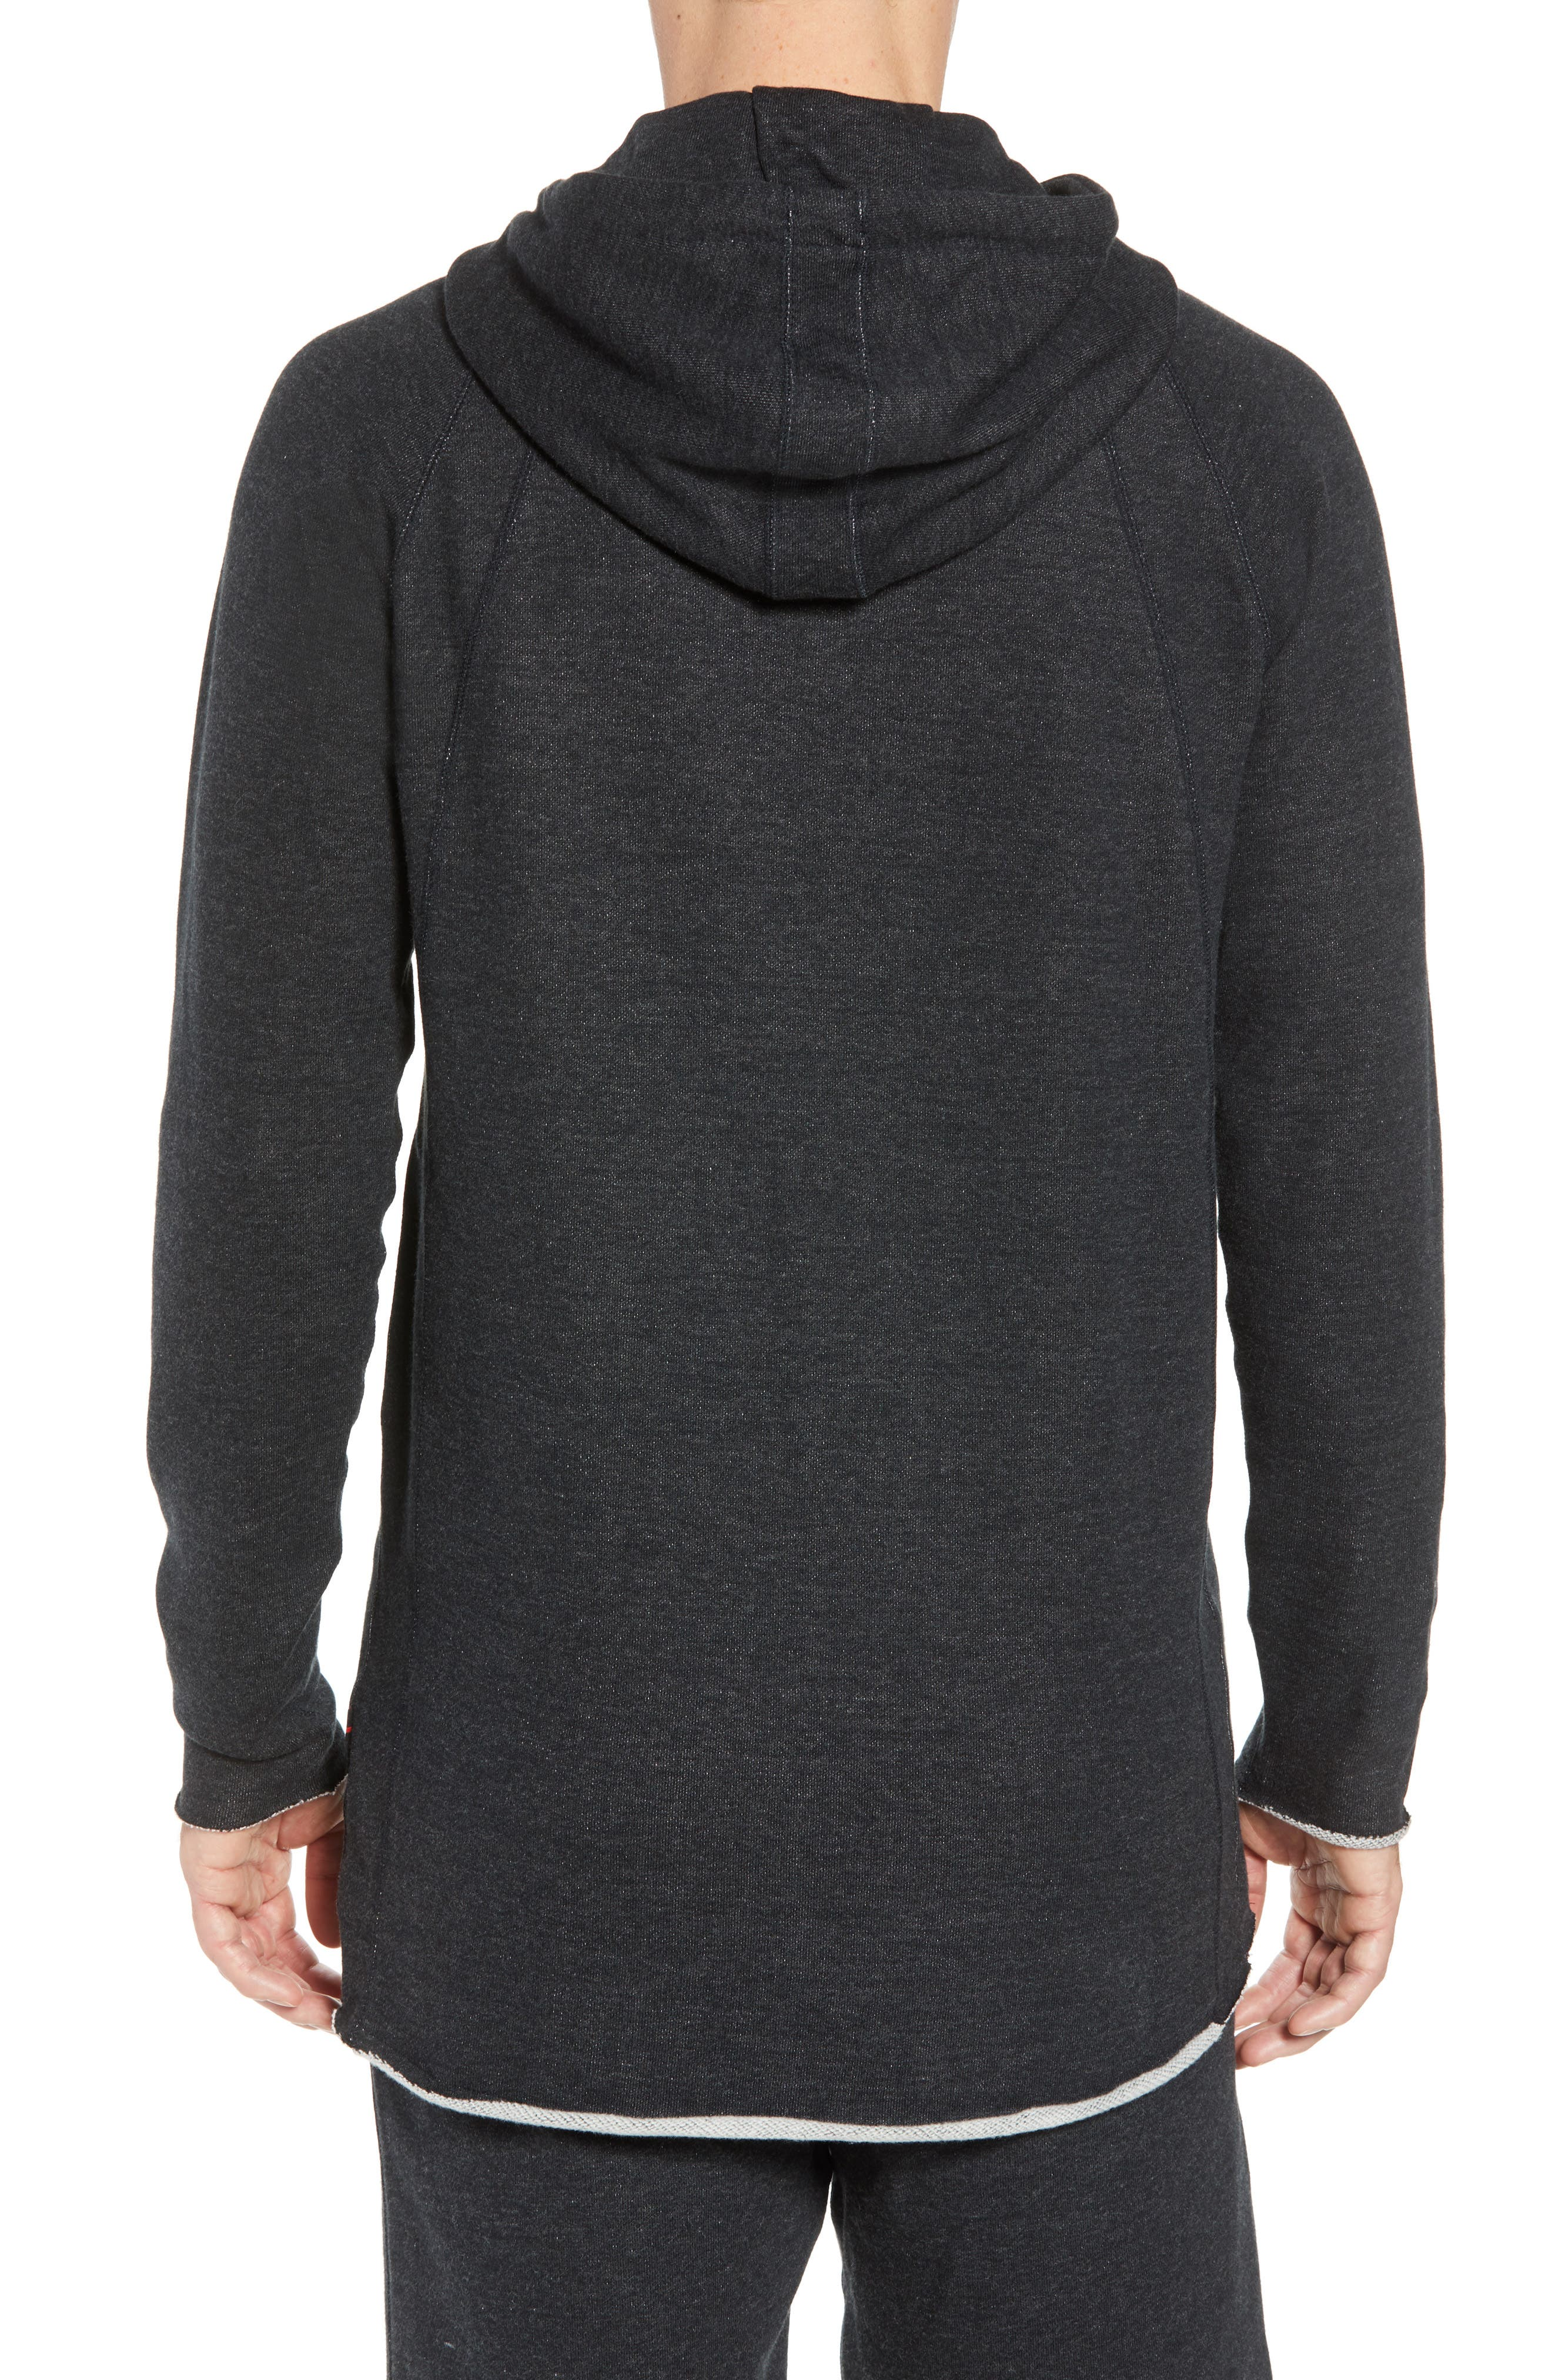 Wings Light French Terry Hoodie,                             Alternate thumbnail 2, color,                             Black Heather/ Black